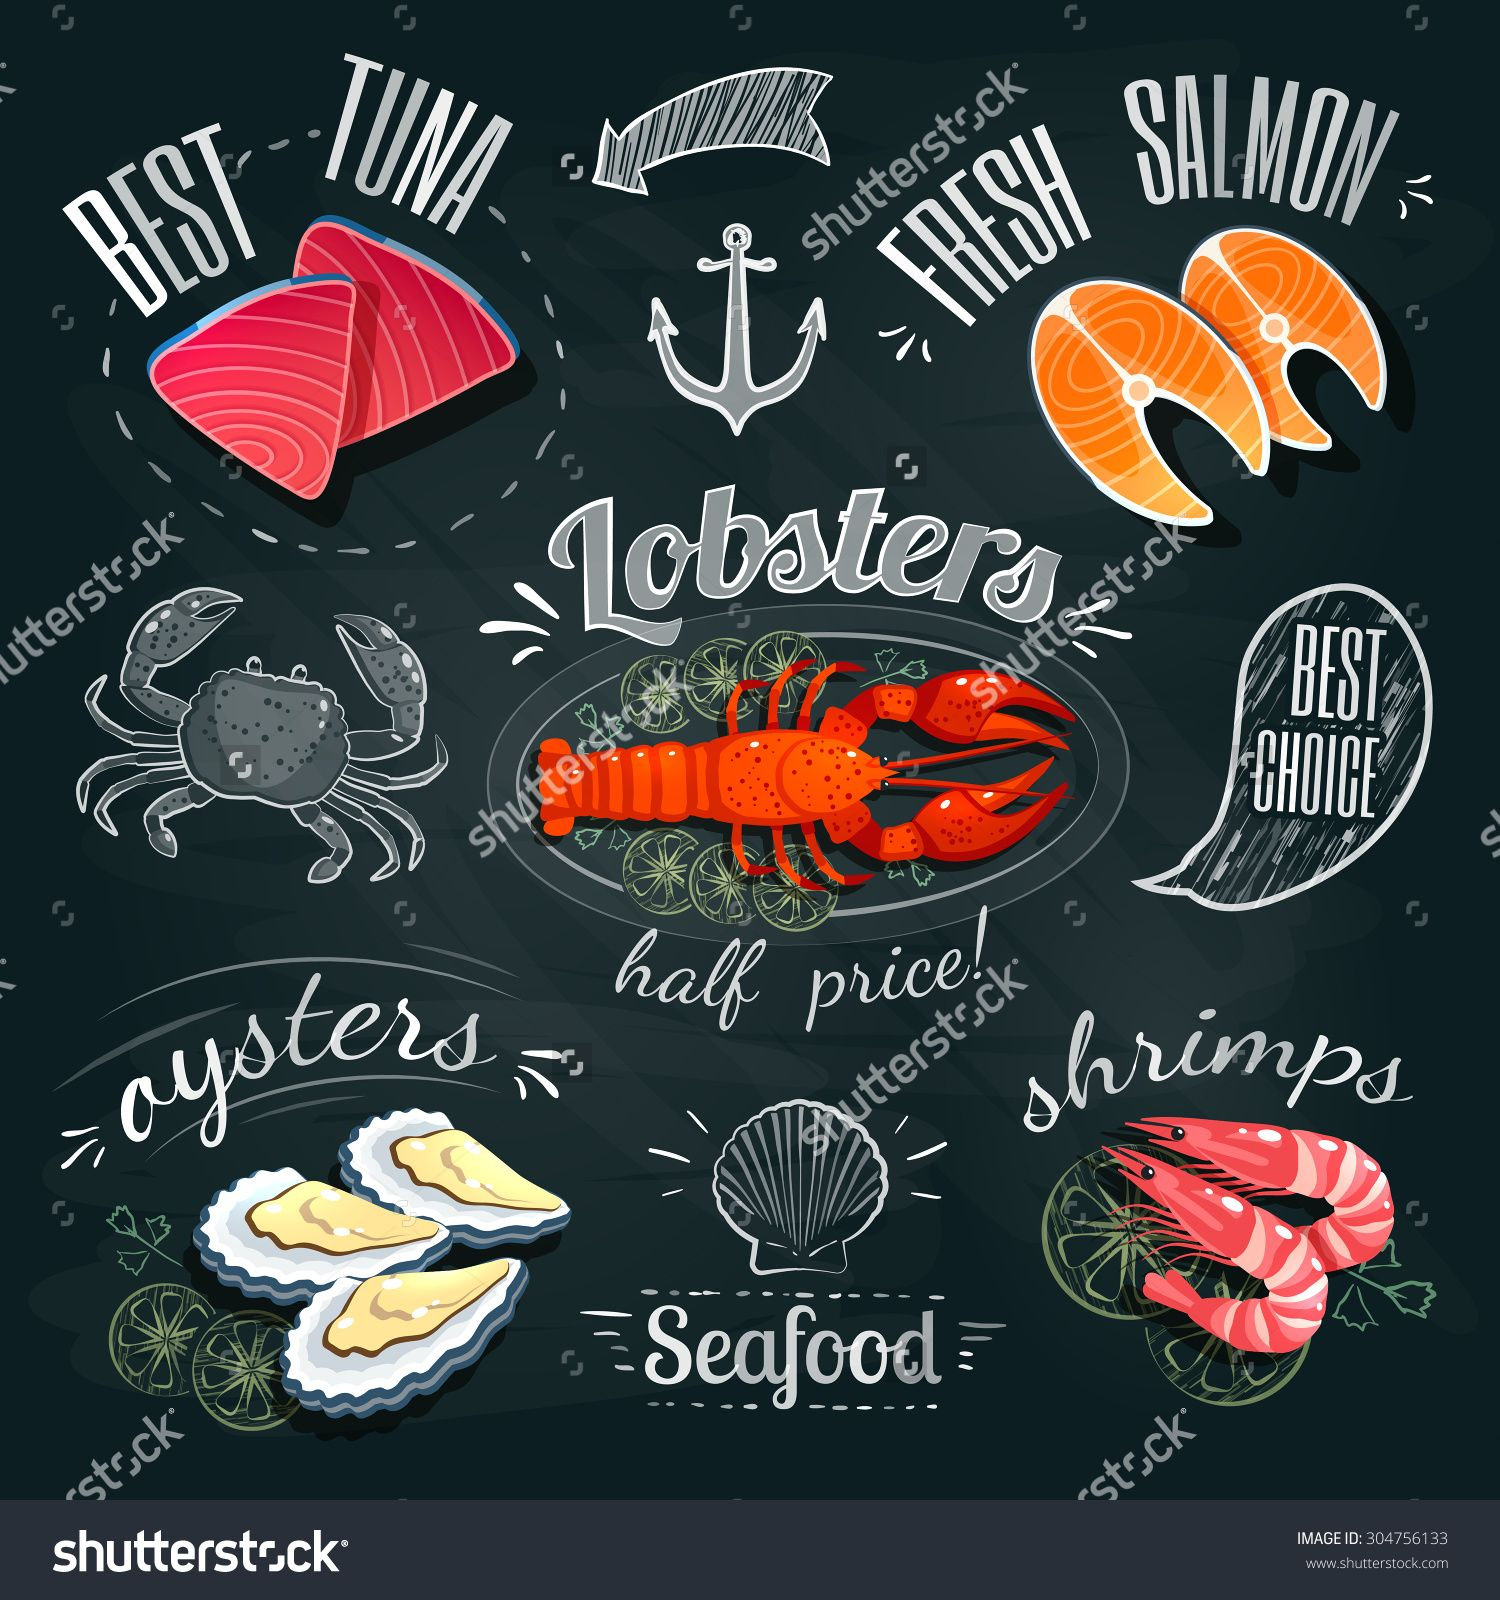 Chalkboard stomach clipart vector library stock Chalkboard Seafood Ads - Tuna, Salmon, Lobster, Oysters And ... vector library stock